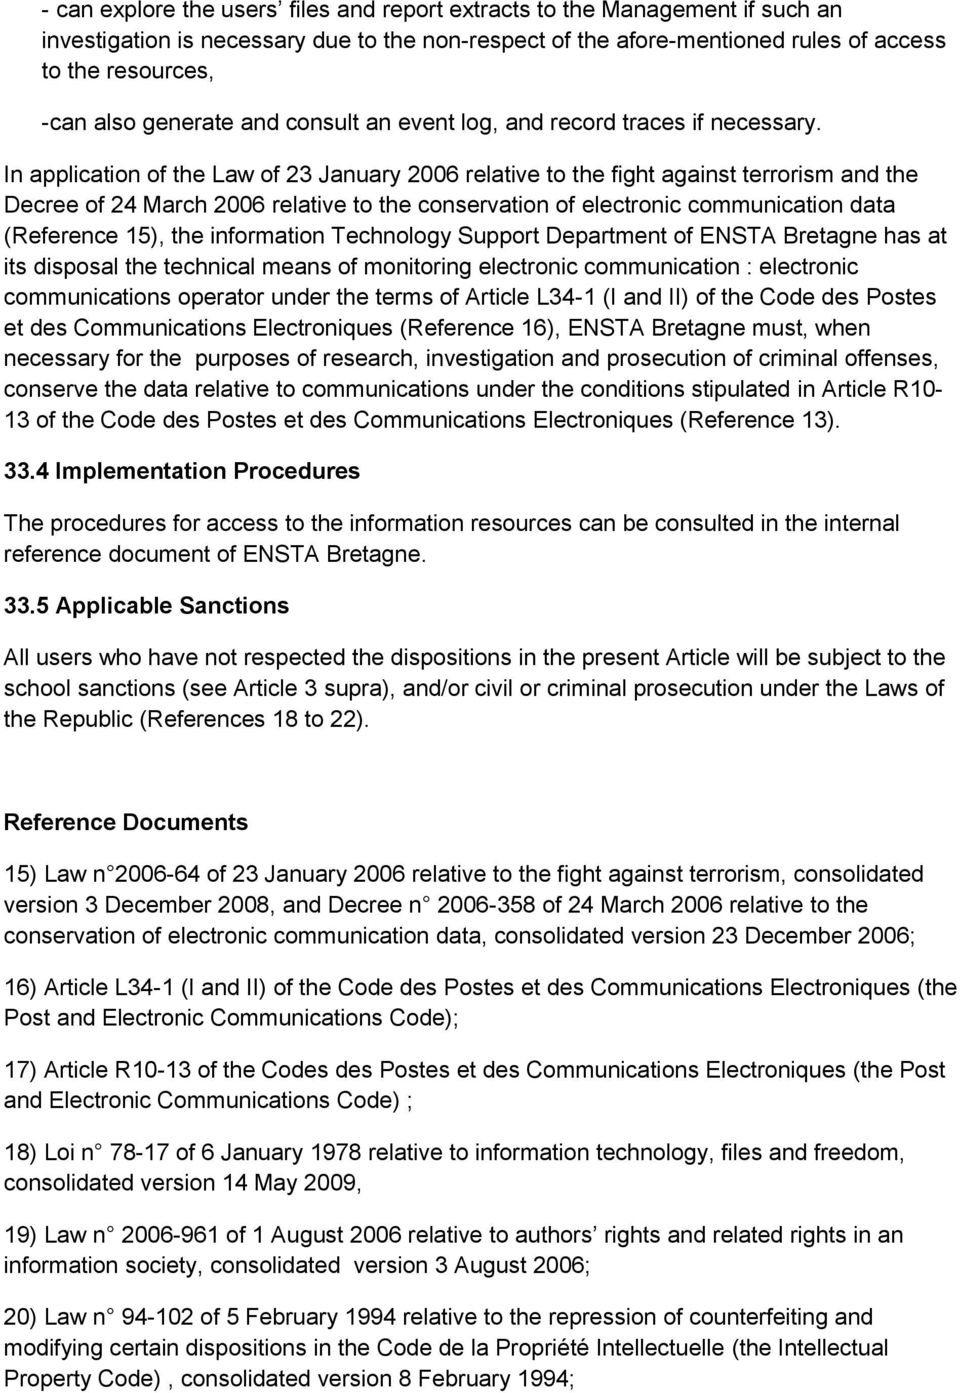 In application of the Law of 23 January 2006 relative to the fight against terrorism and the Decree of 24 March 2006 relative to the conservation of electronic communication data (Reference 15), the